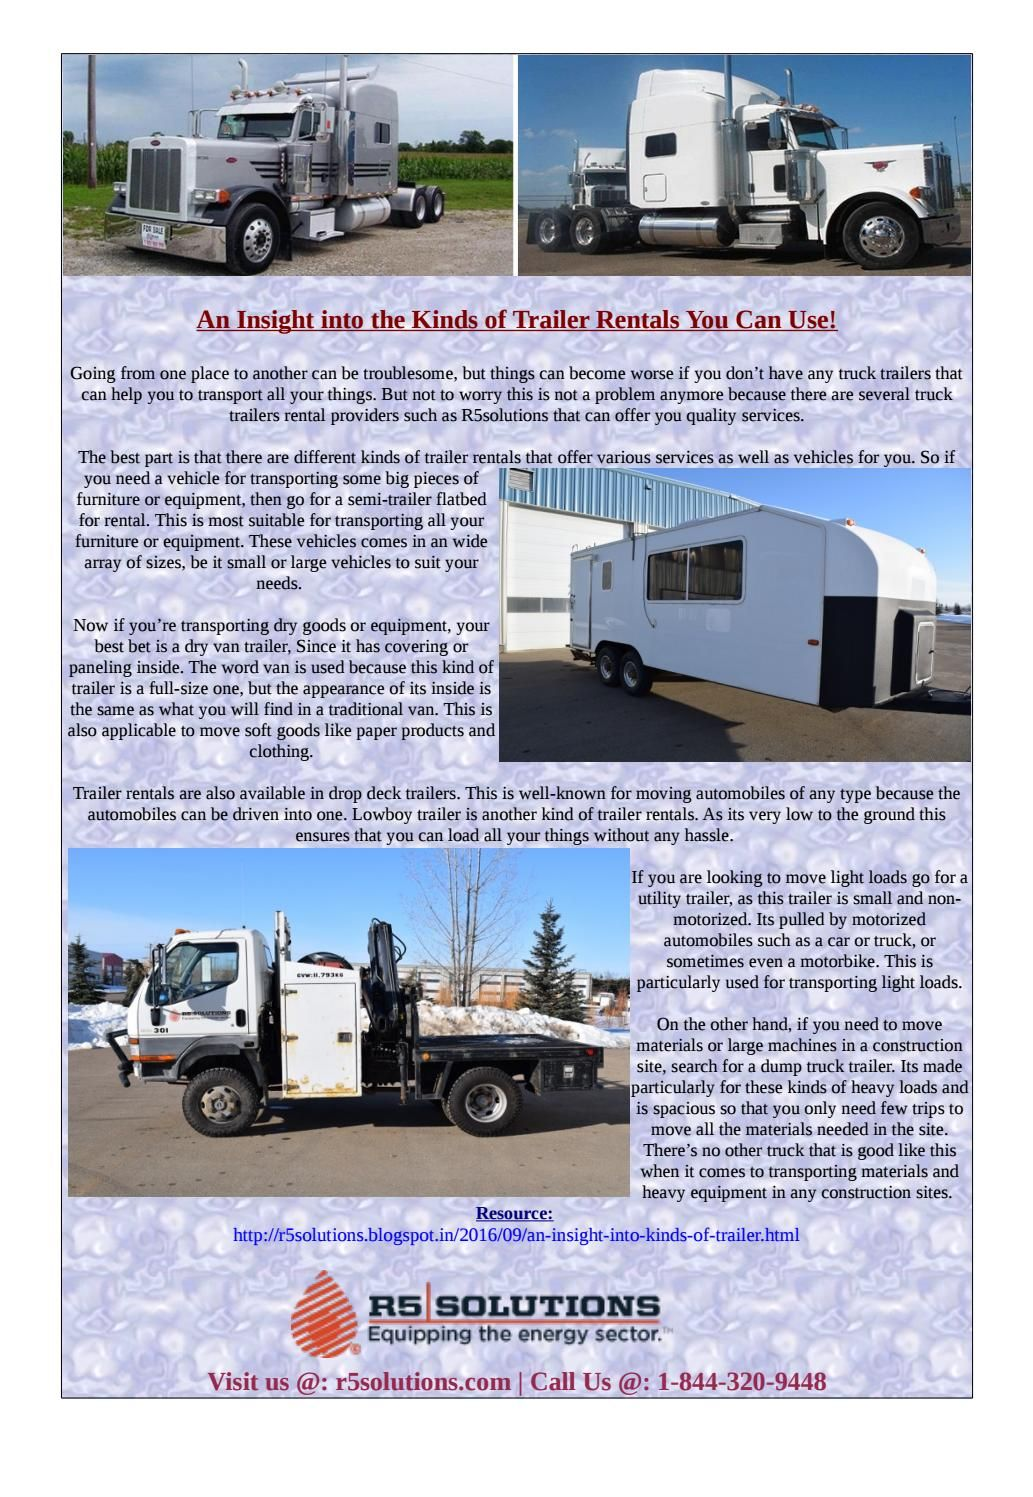 An insight into the kinds of trailer rentals you can use